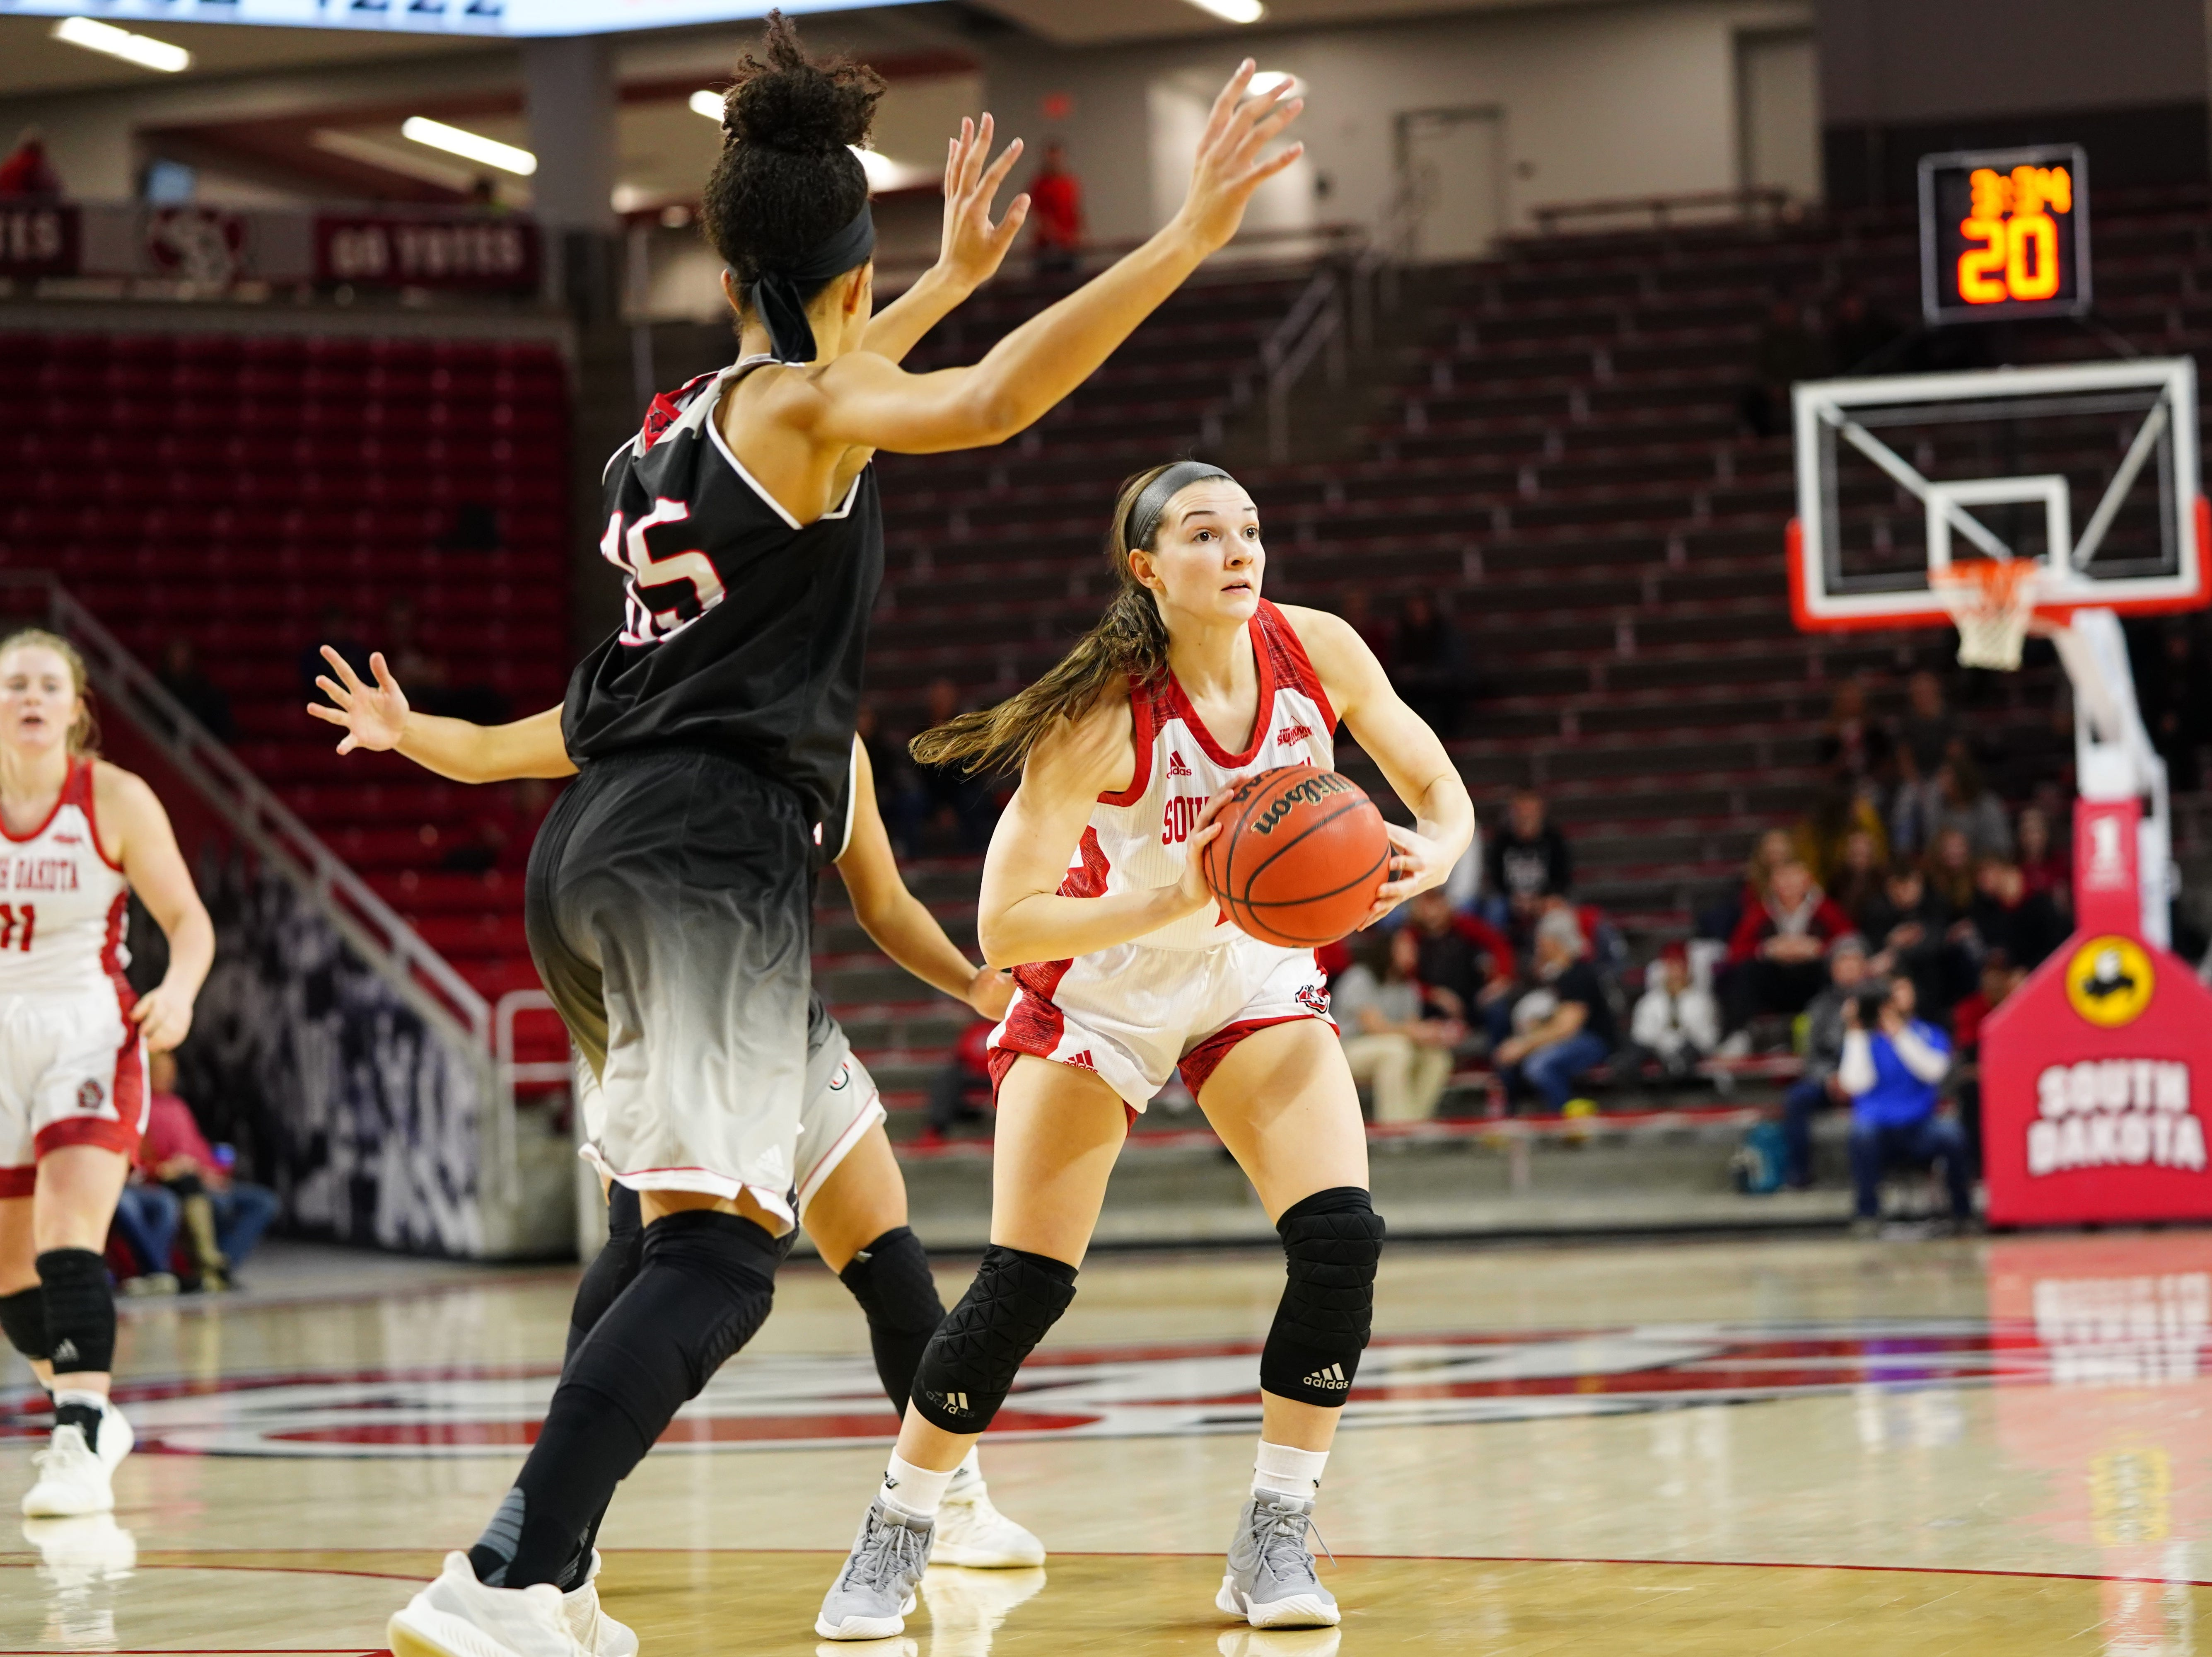 USD guard looks to pass against Omaha on Feb. 6, 2019.